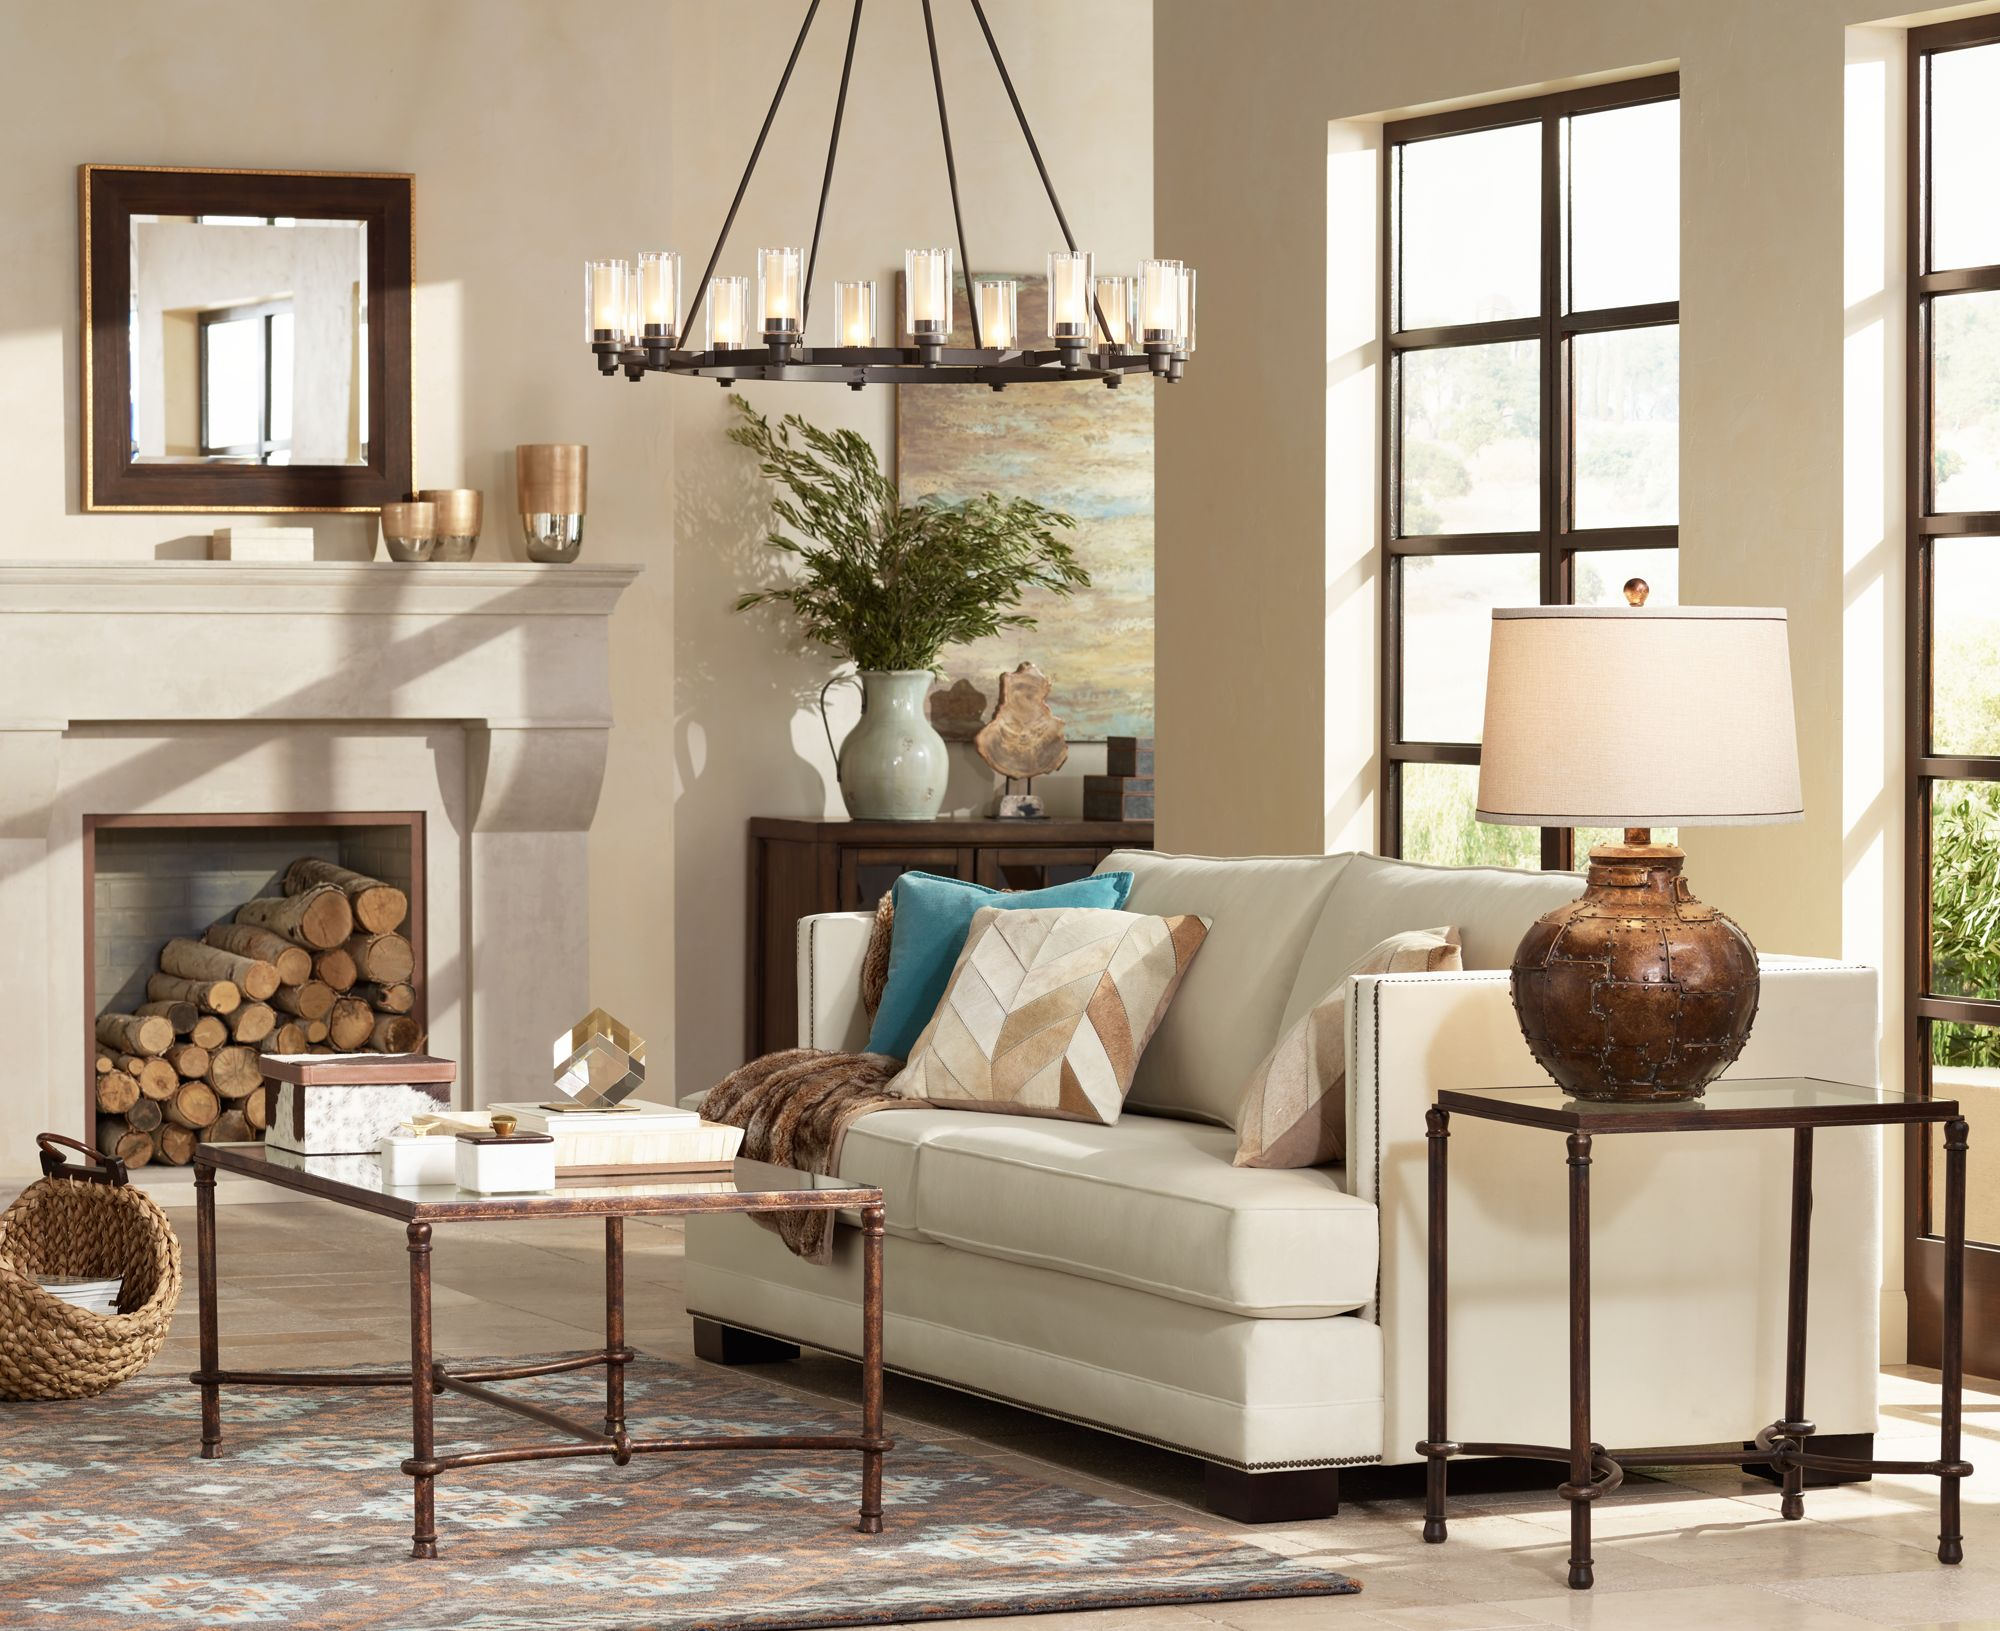 Charming A Large Chandelier Anchors A Cozy Living Room With Rustic Touches.